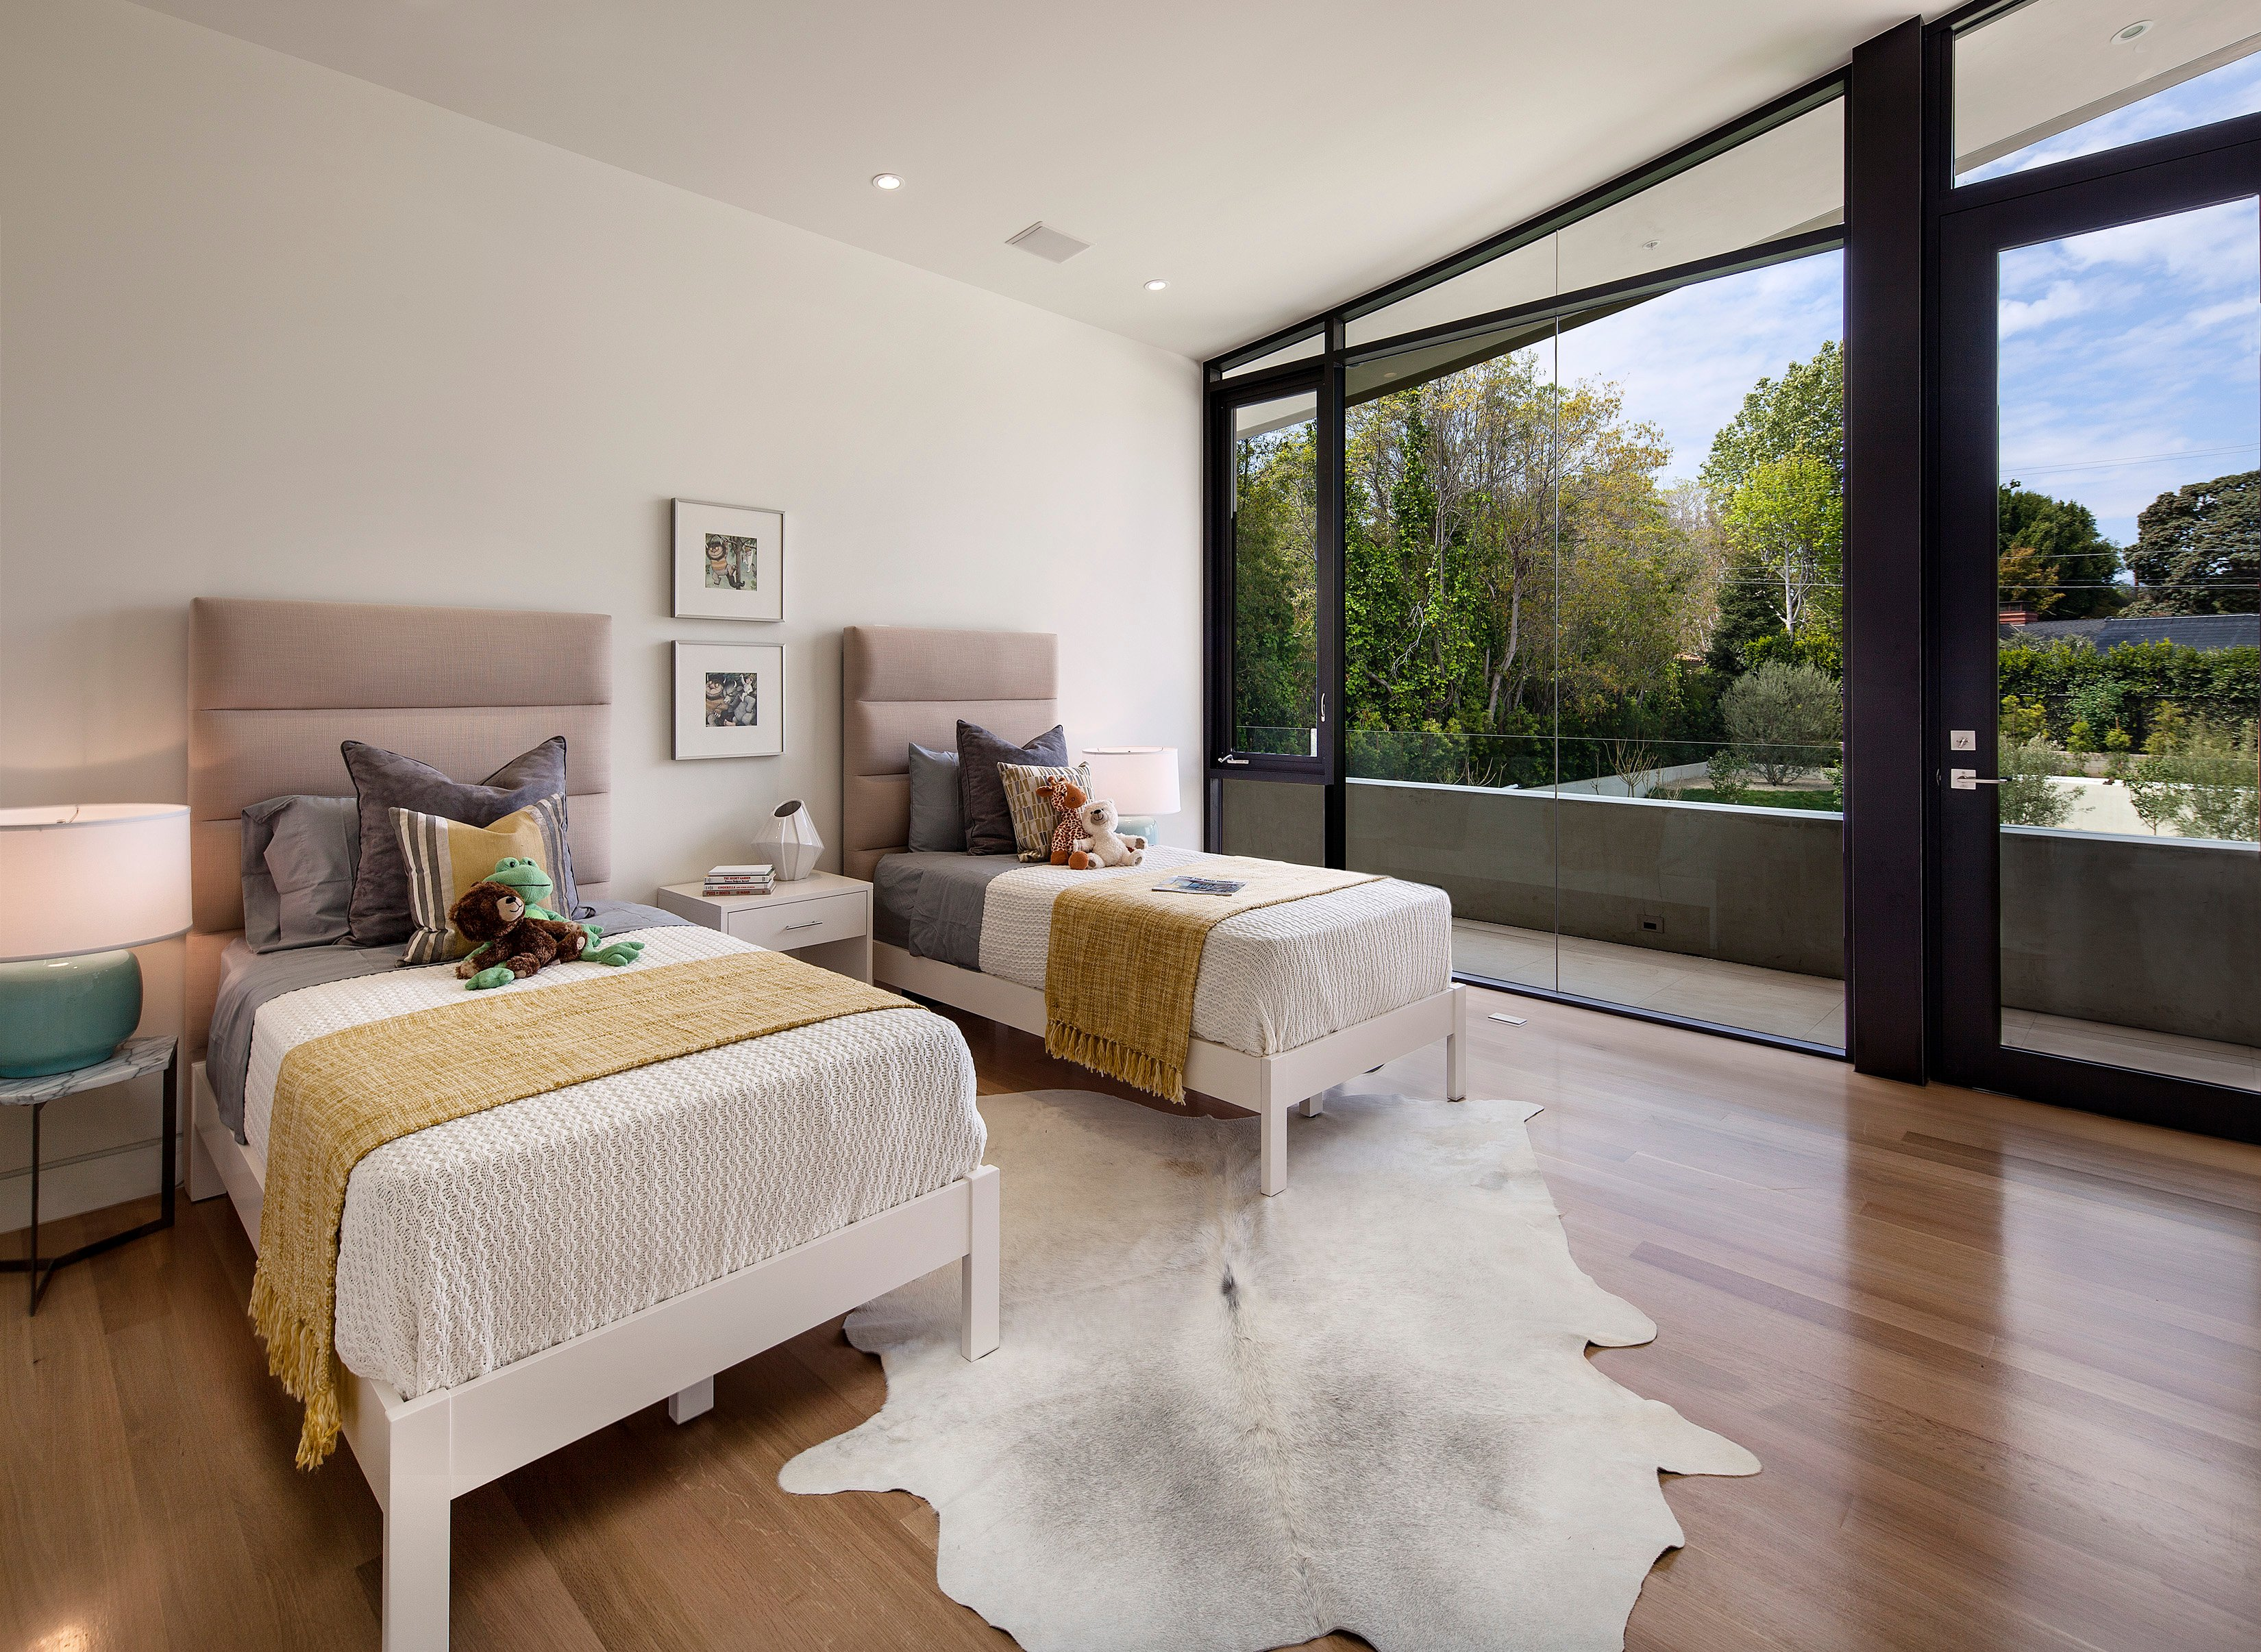 Upper level children's bedroom pairs white wood framed beds over animal skin rug on the same natural hardwood flooring deployed throughout the second floor. Once again, glass exterior wall and door open to private balcony space.